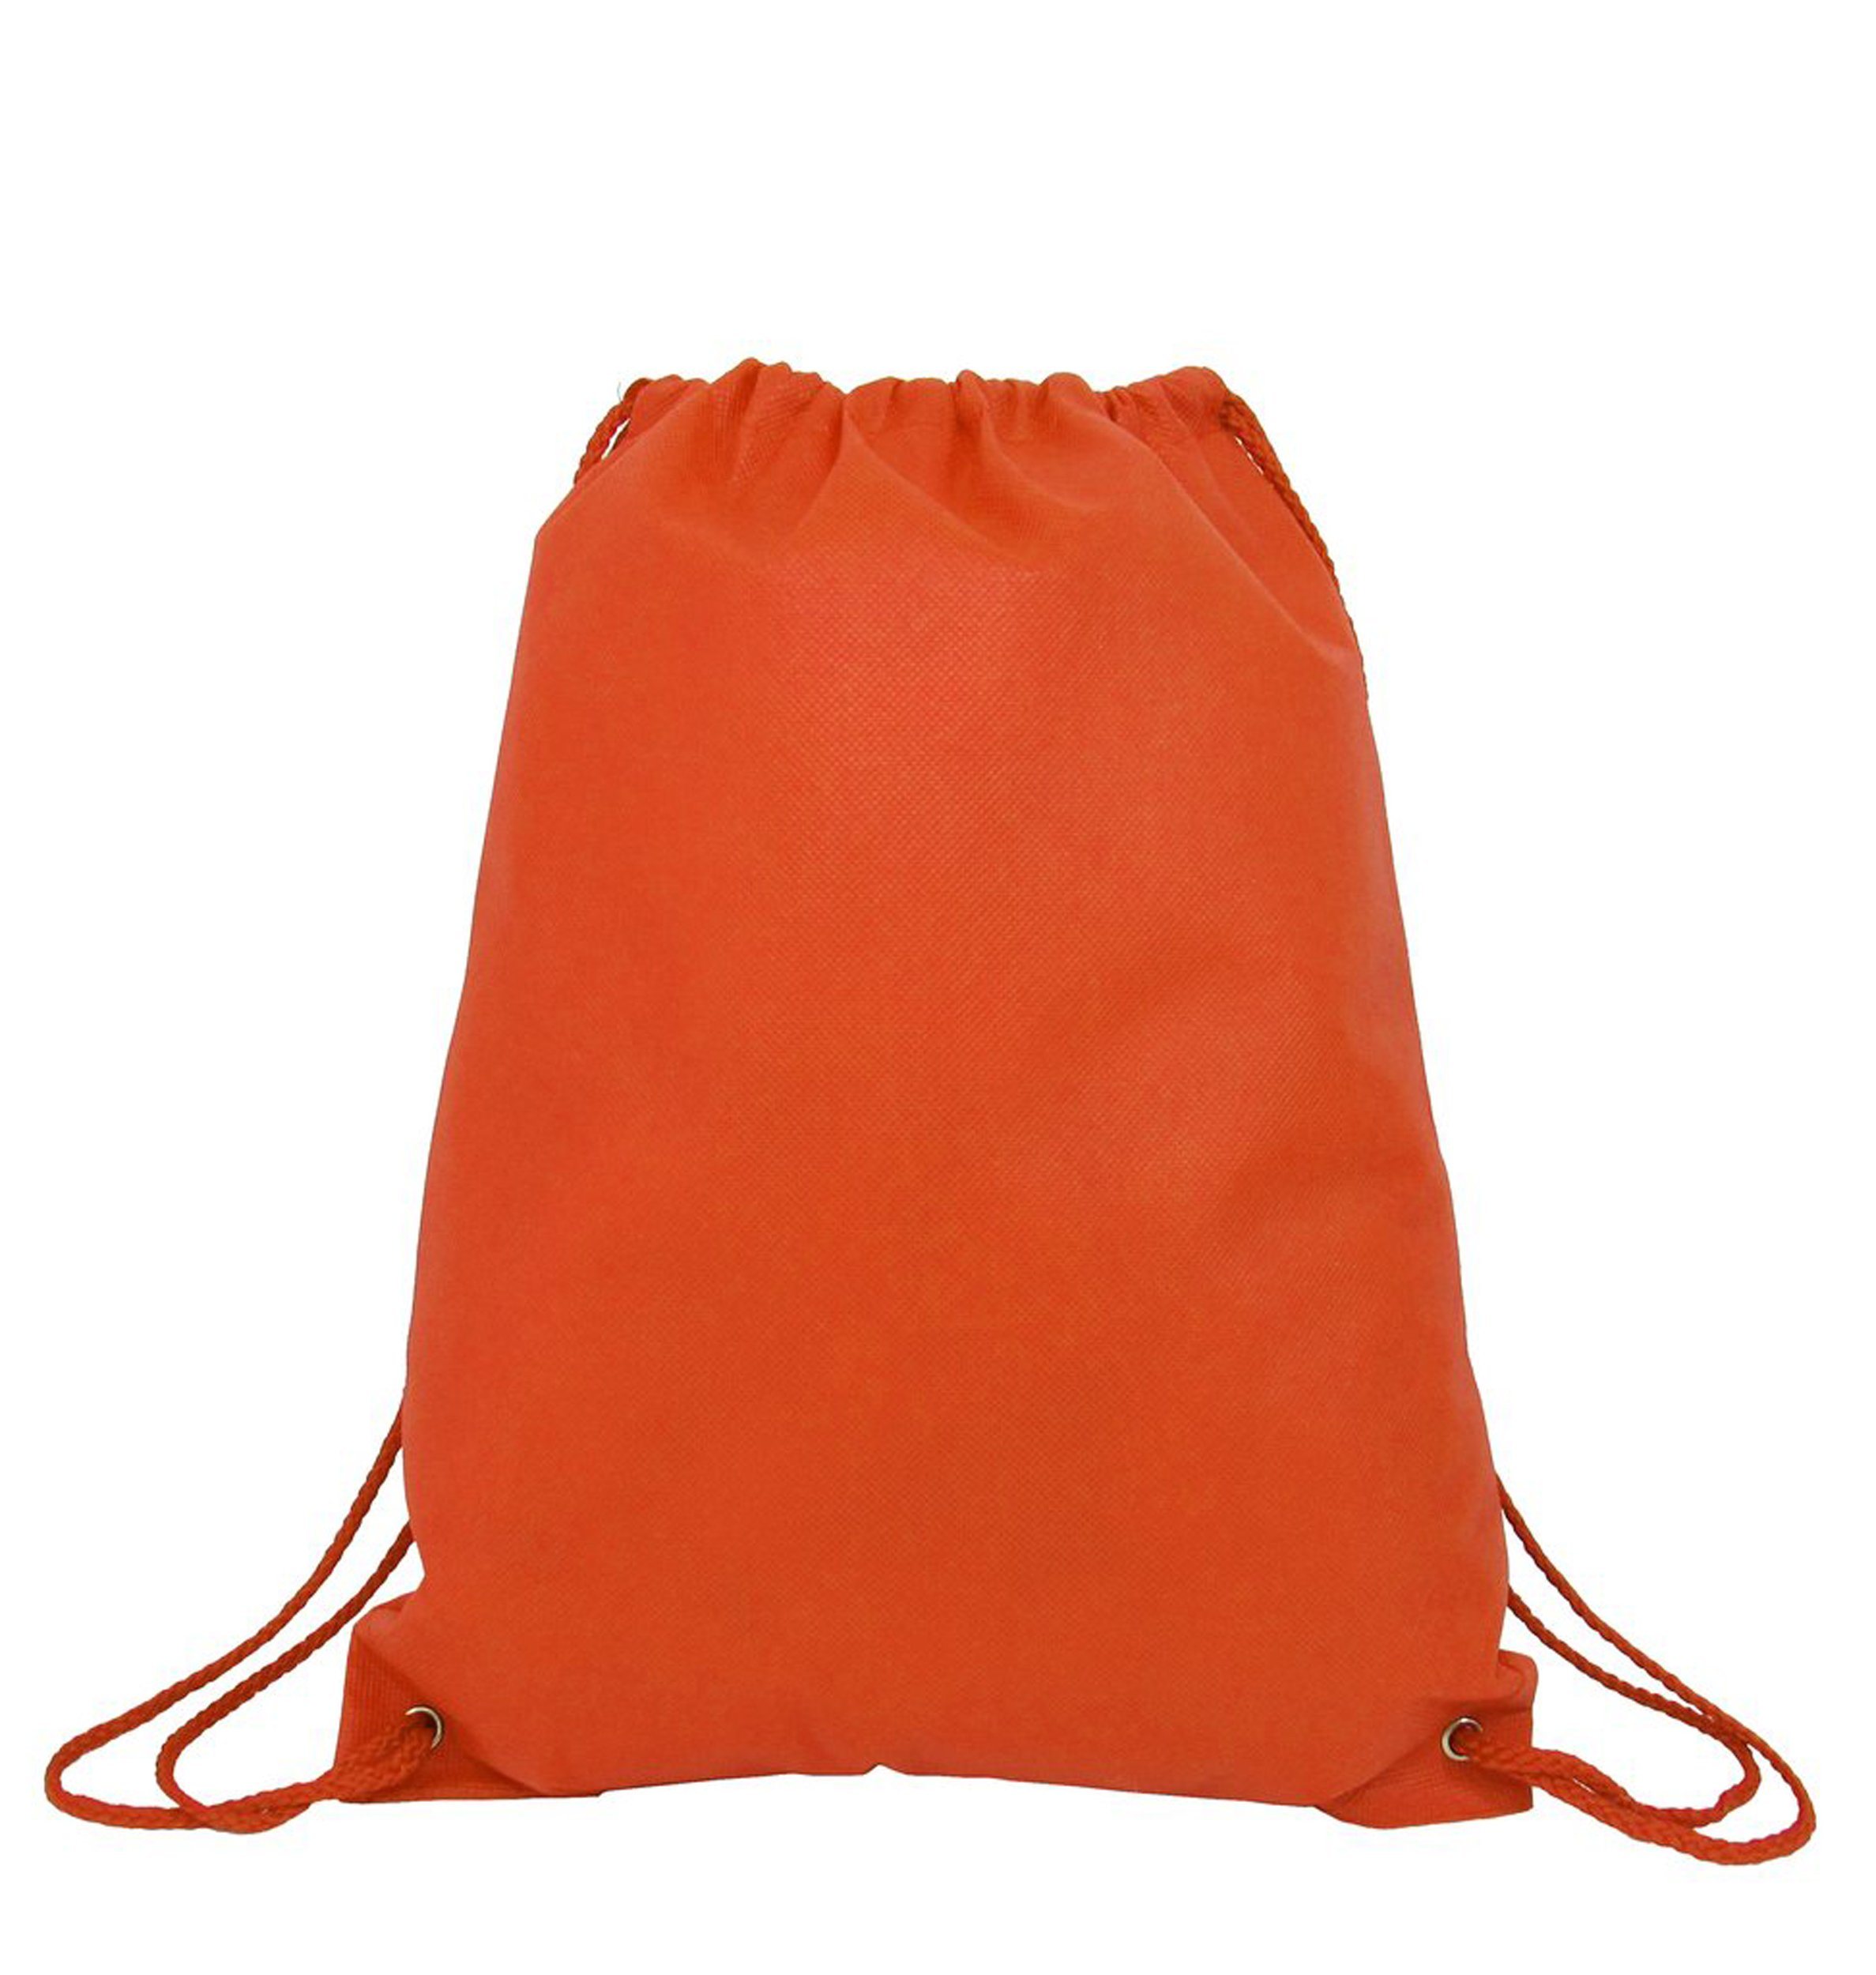 100 PACK - Multipurpose Non Woven Well Made Drawstring Backpack Bags